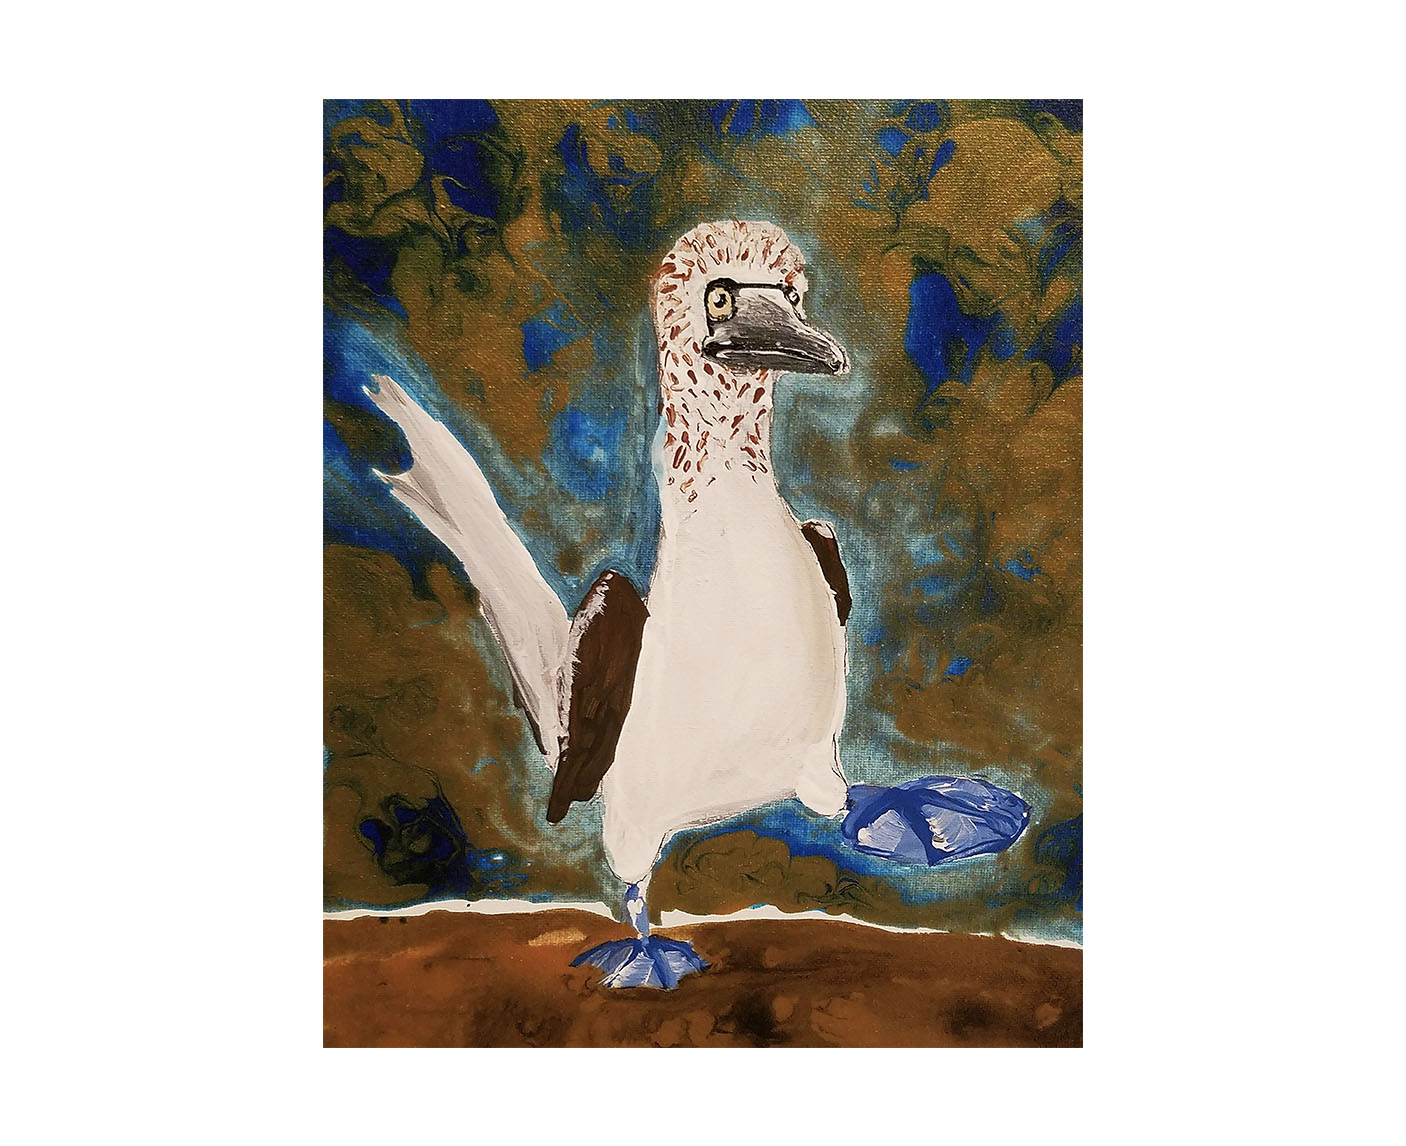 """Dancing Blue""   11x14 mixed media on canvas  ""This is the Blue footed Booby! I made this for my friends The Blue Feet Foundation where they sell really fun blue socks for species' awareness and conservation of the Galapagos Islands 💙💙 I've learned that not only do they dance to find a mate ( by impressing them with their blue feet) but the bluer the feet the healthier they are! This will be for sale on my website this week to fund #conservation and #AnimalWelfare"" - Bria"